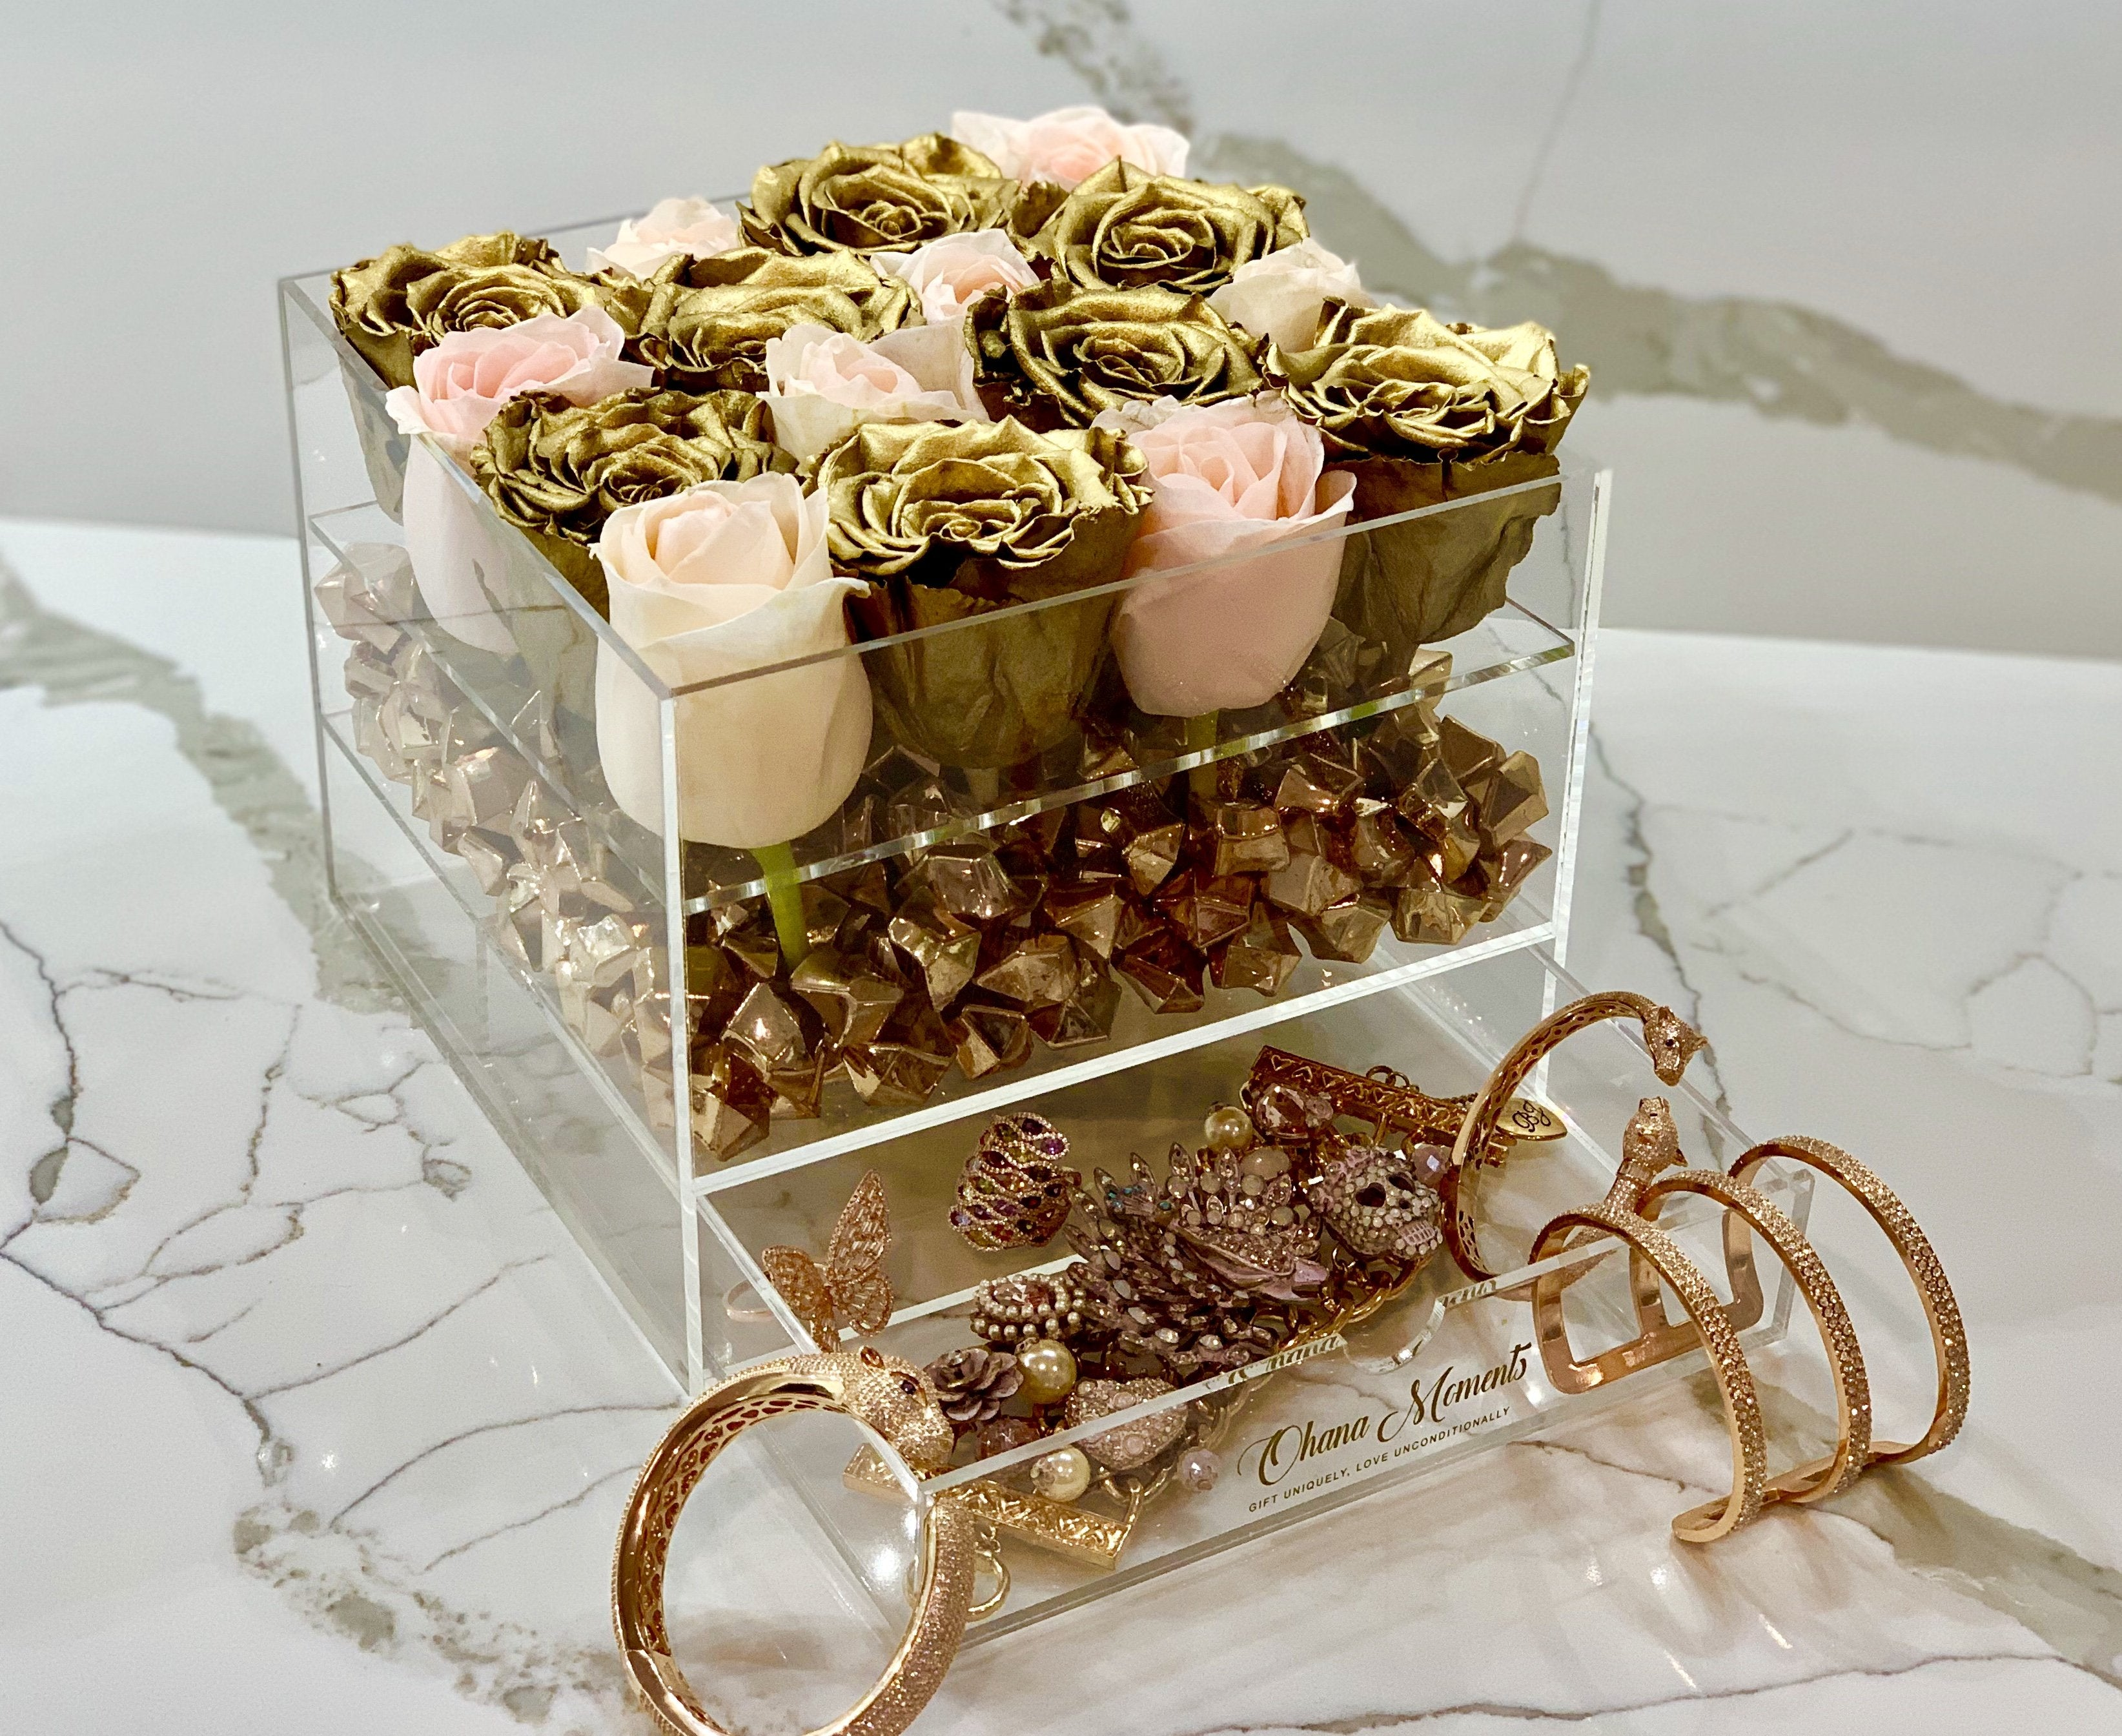 Modern Rose Box with preserved roses that last for years with a mix of peach roses and metallic gold roses